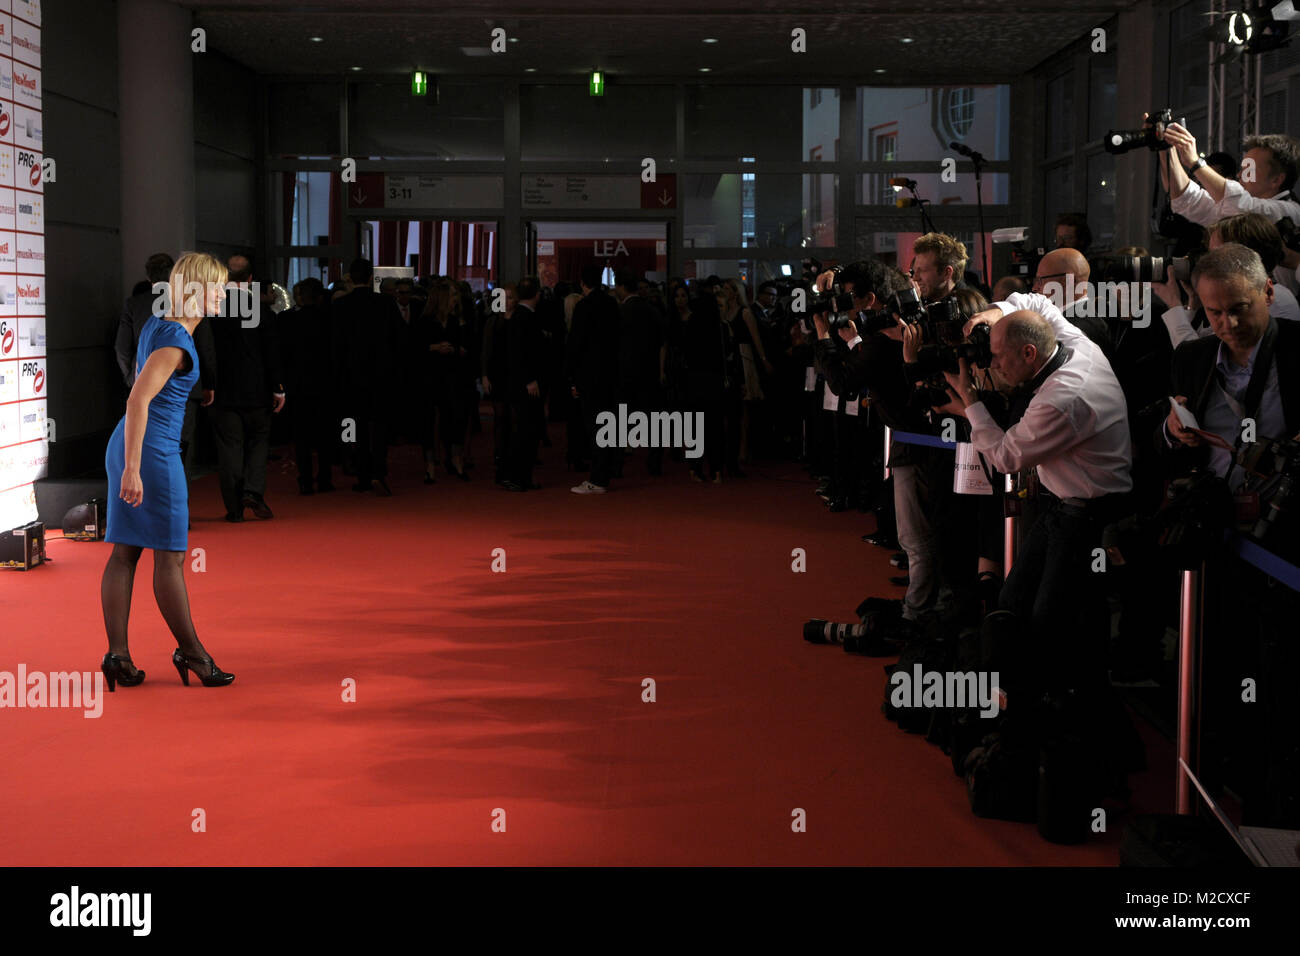 Roter Teppich Frankfurt Barbara Hahlweg Lea Live Entertainment Stock Photos